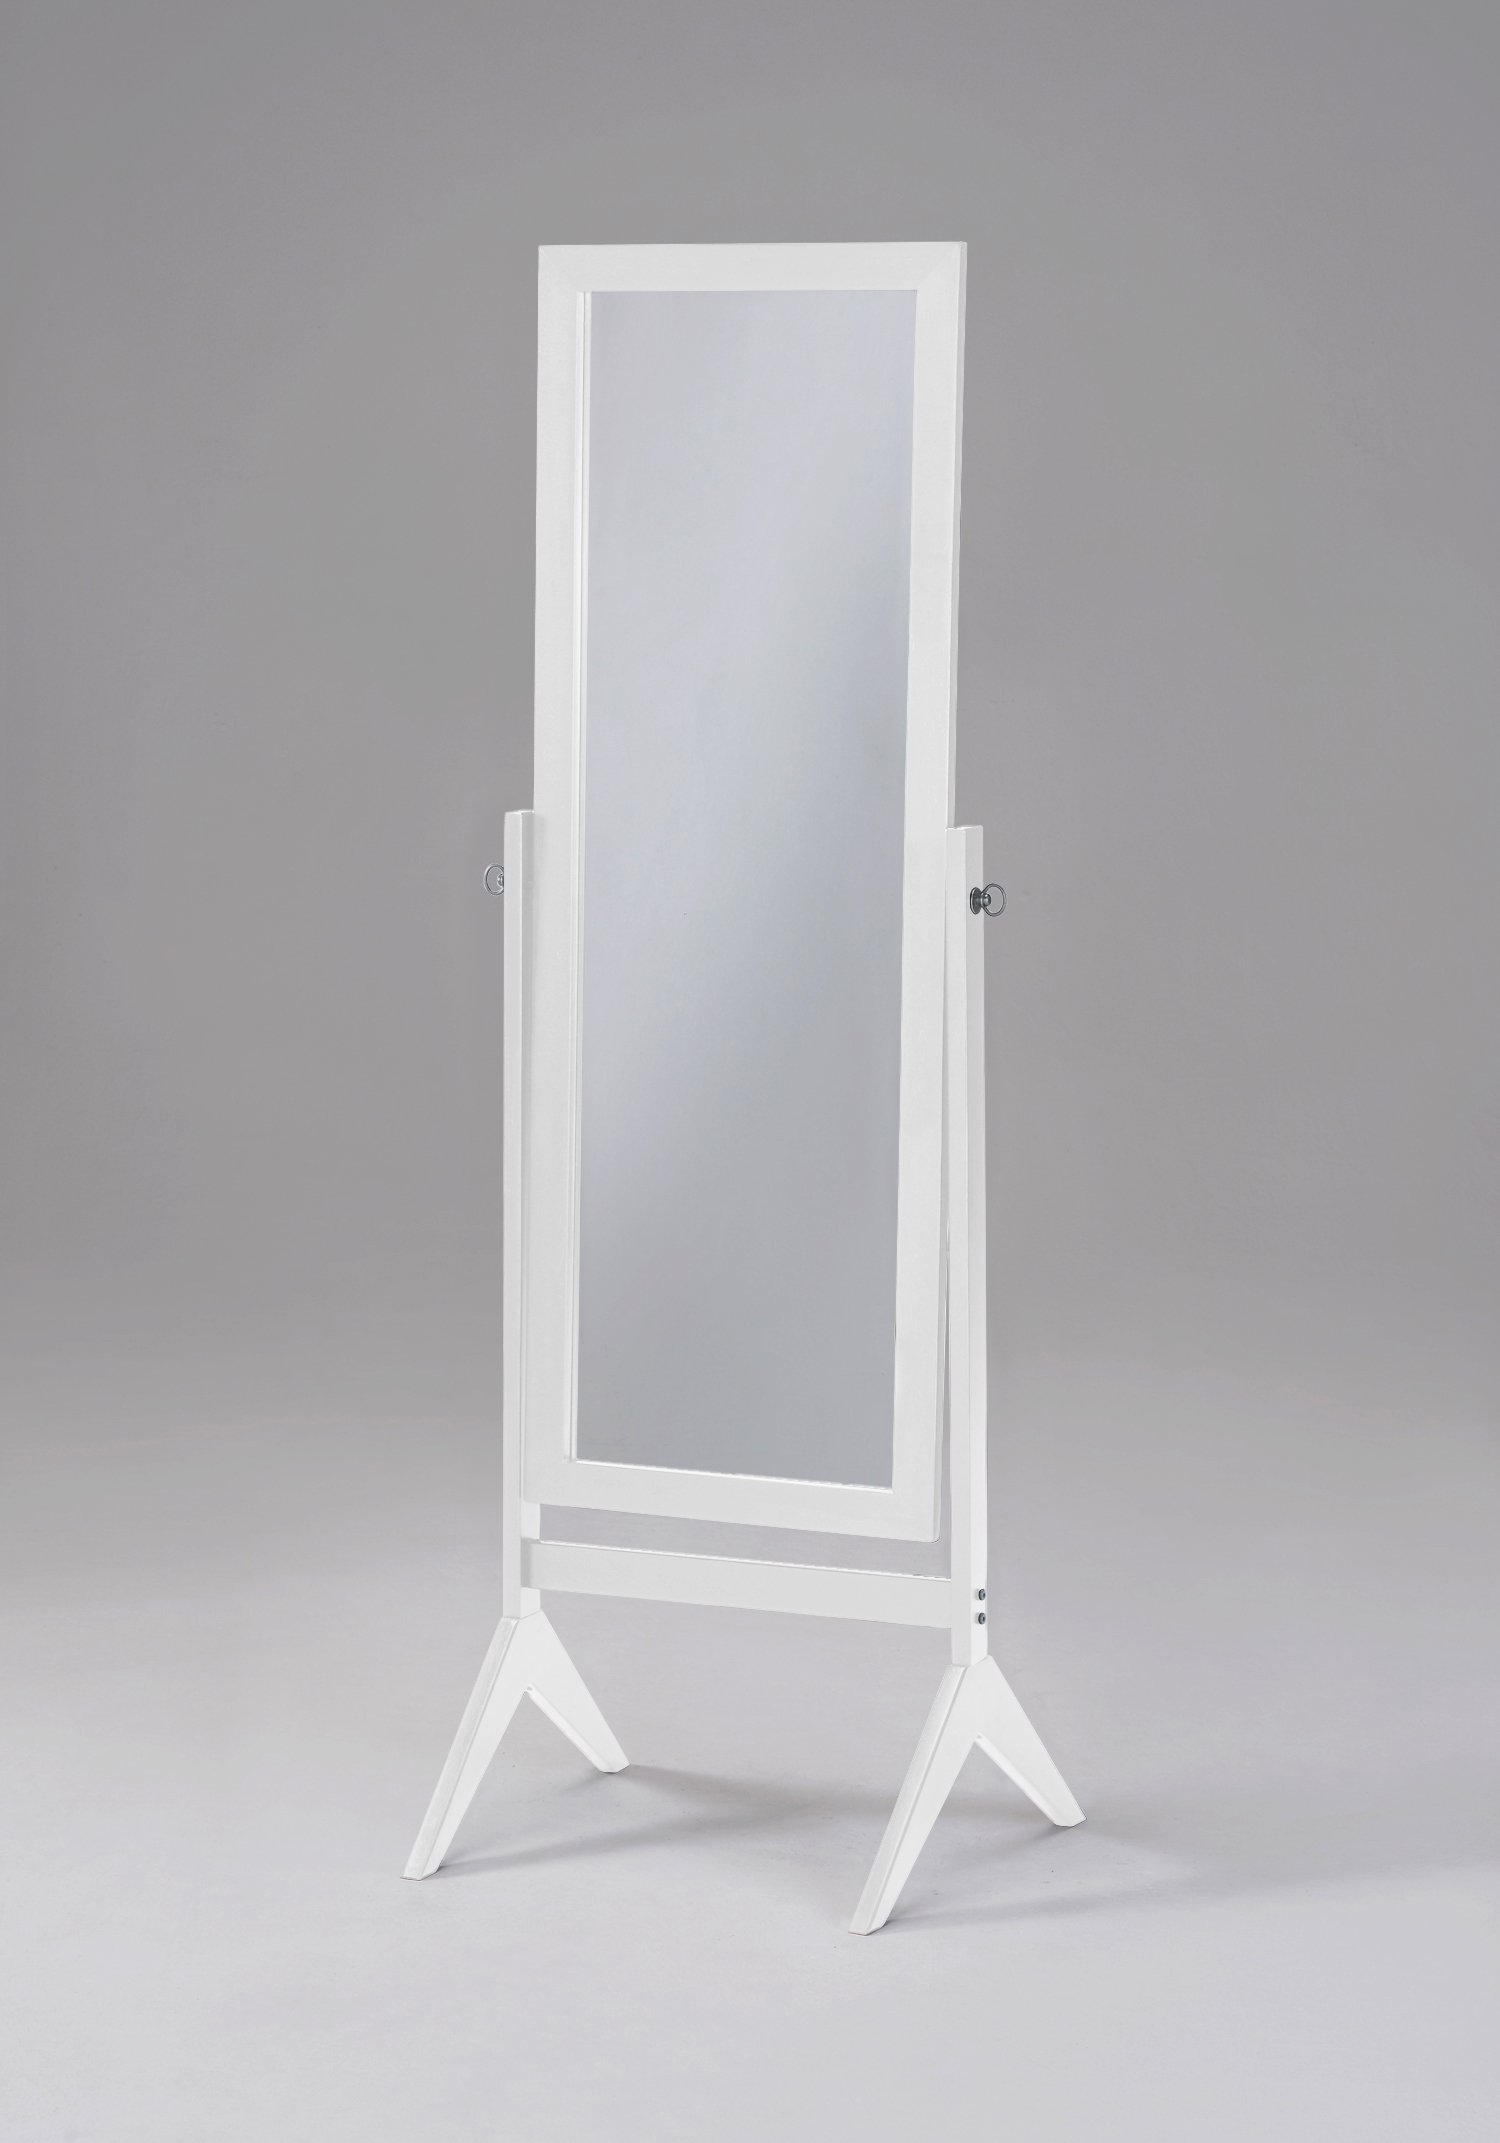 White Finish Wooden Cheval Bedroom Free Standing Floor Mirror (Cheval White) by eHomeProducts